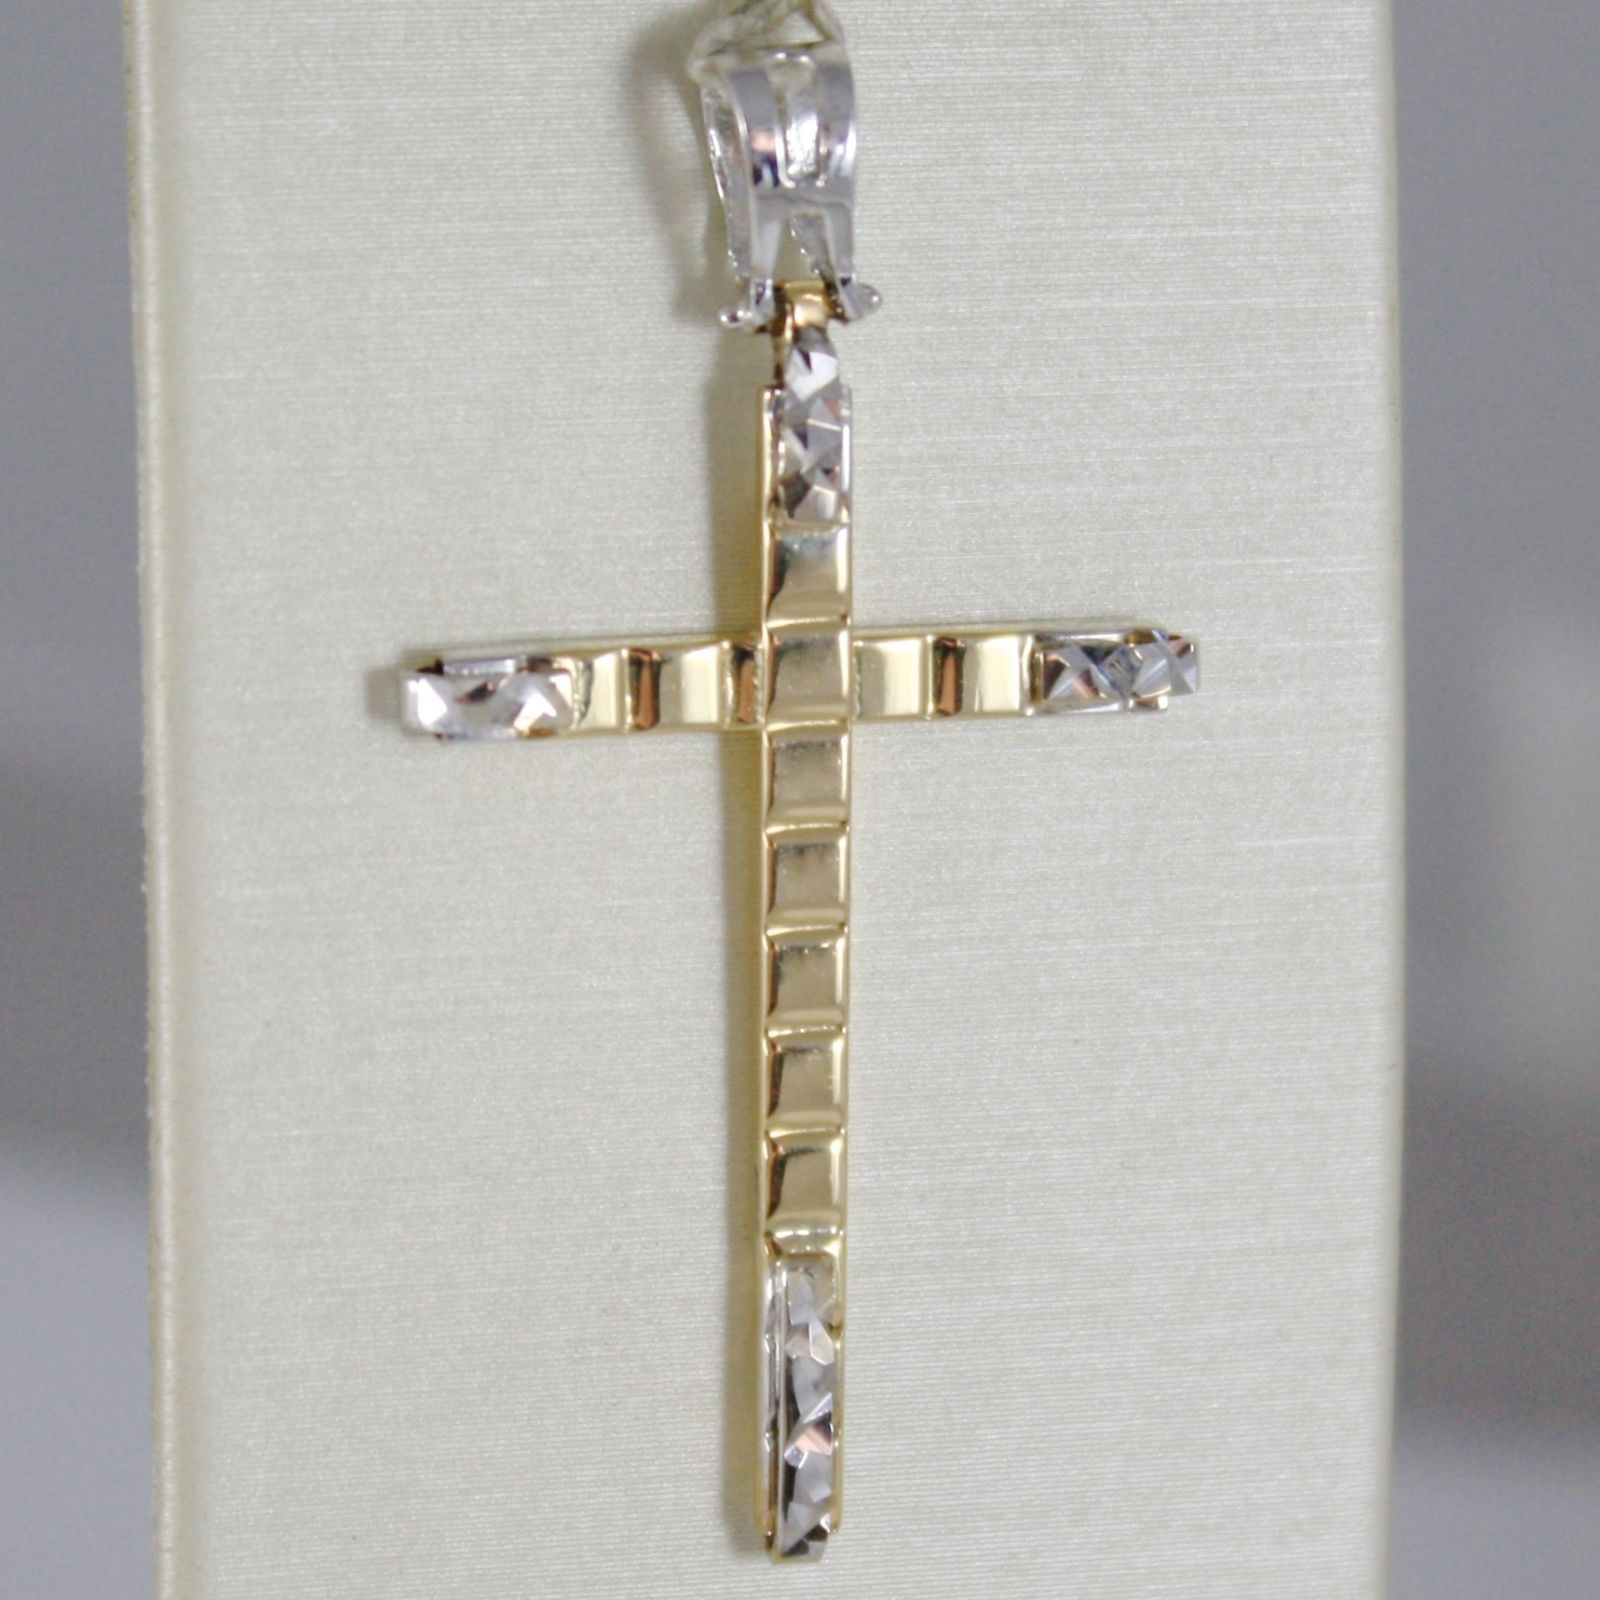 18K WHITE AND YELLOW GOLD CROSS STYLIZED VERY LUSTER MADE IN ITALY 1.65 INCHES